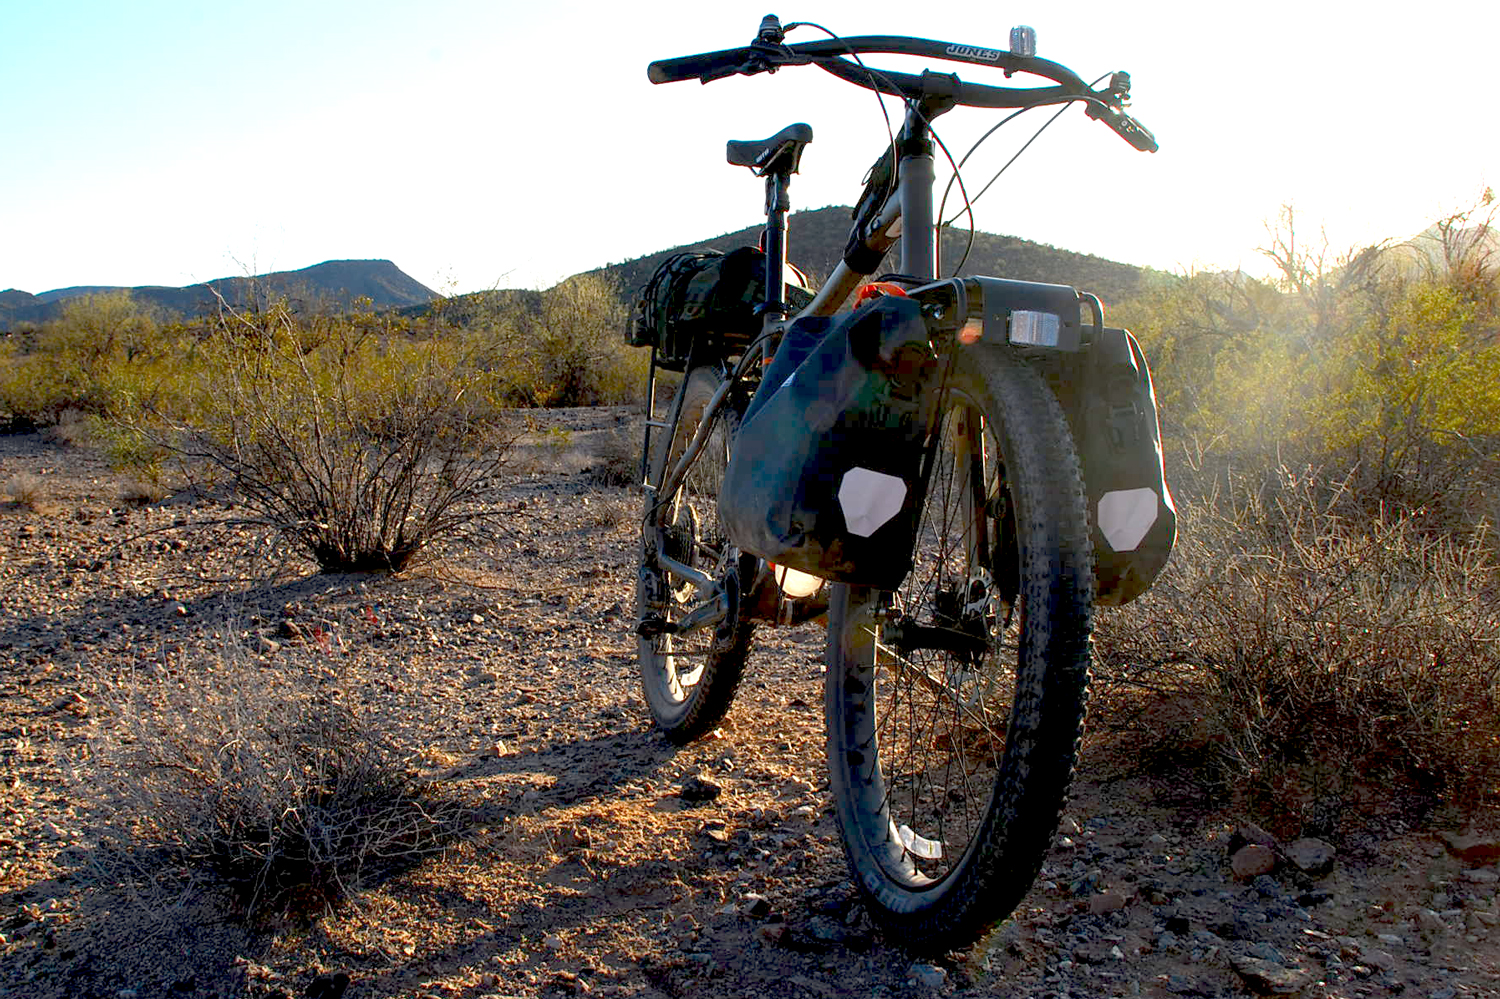 REI's 'Unimog' for Bikepacking: ADV 4 2 Bicycle Review